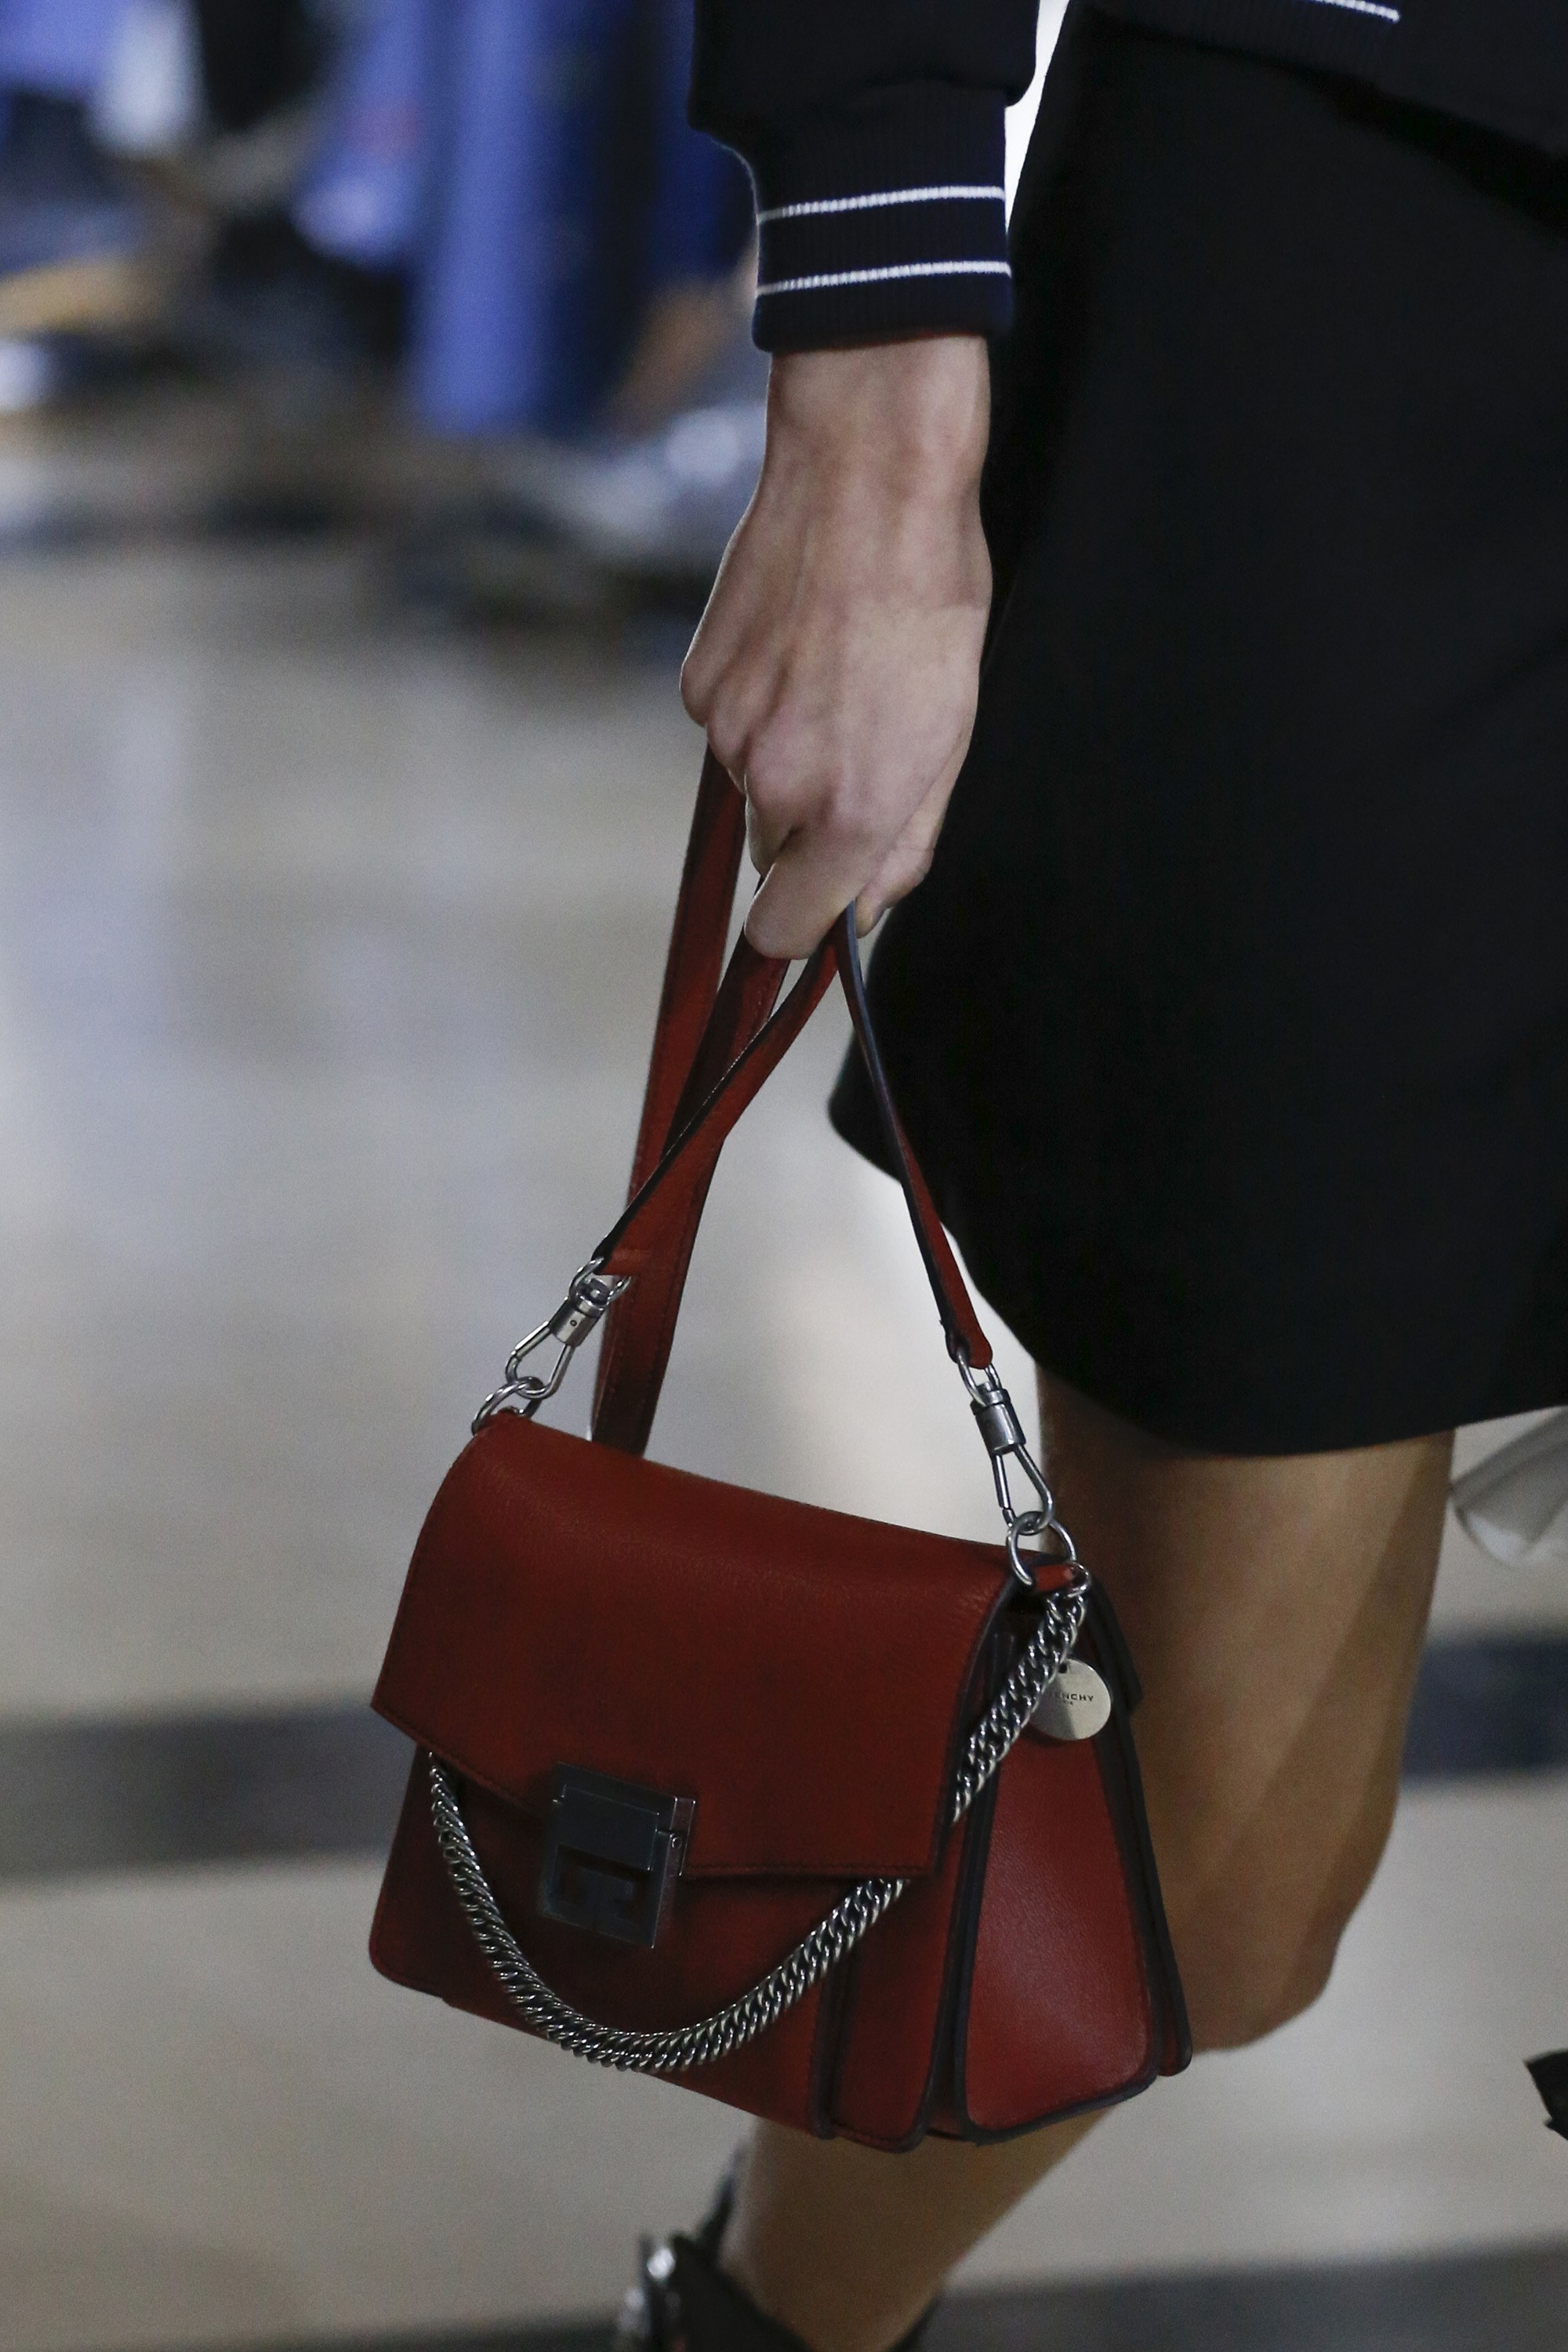 Givenchy SpringSummer 2018 Runway Bag Collection Spotted Fashion